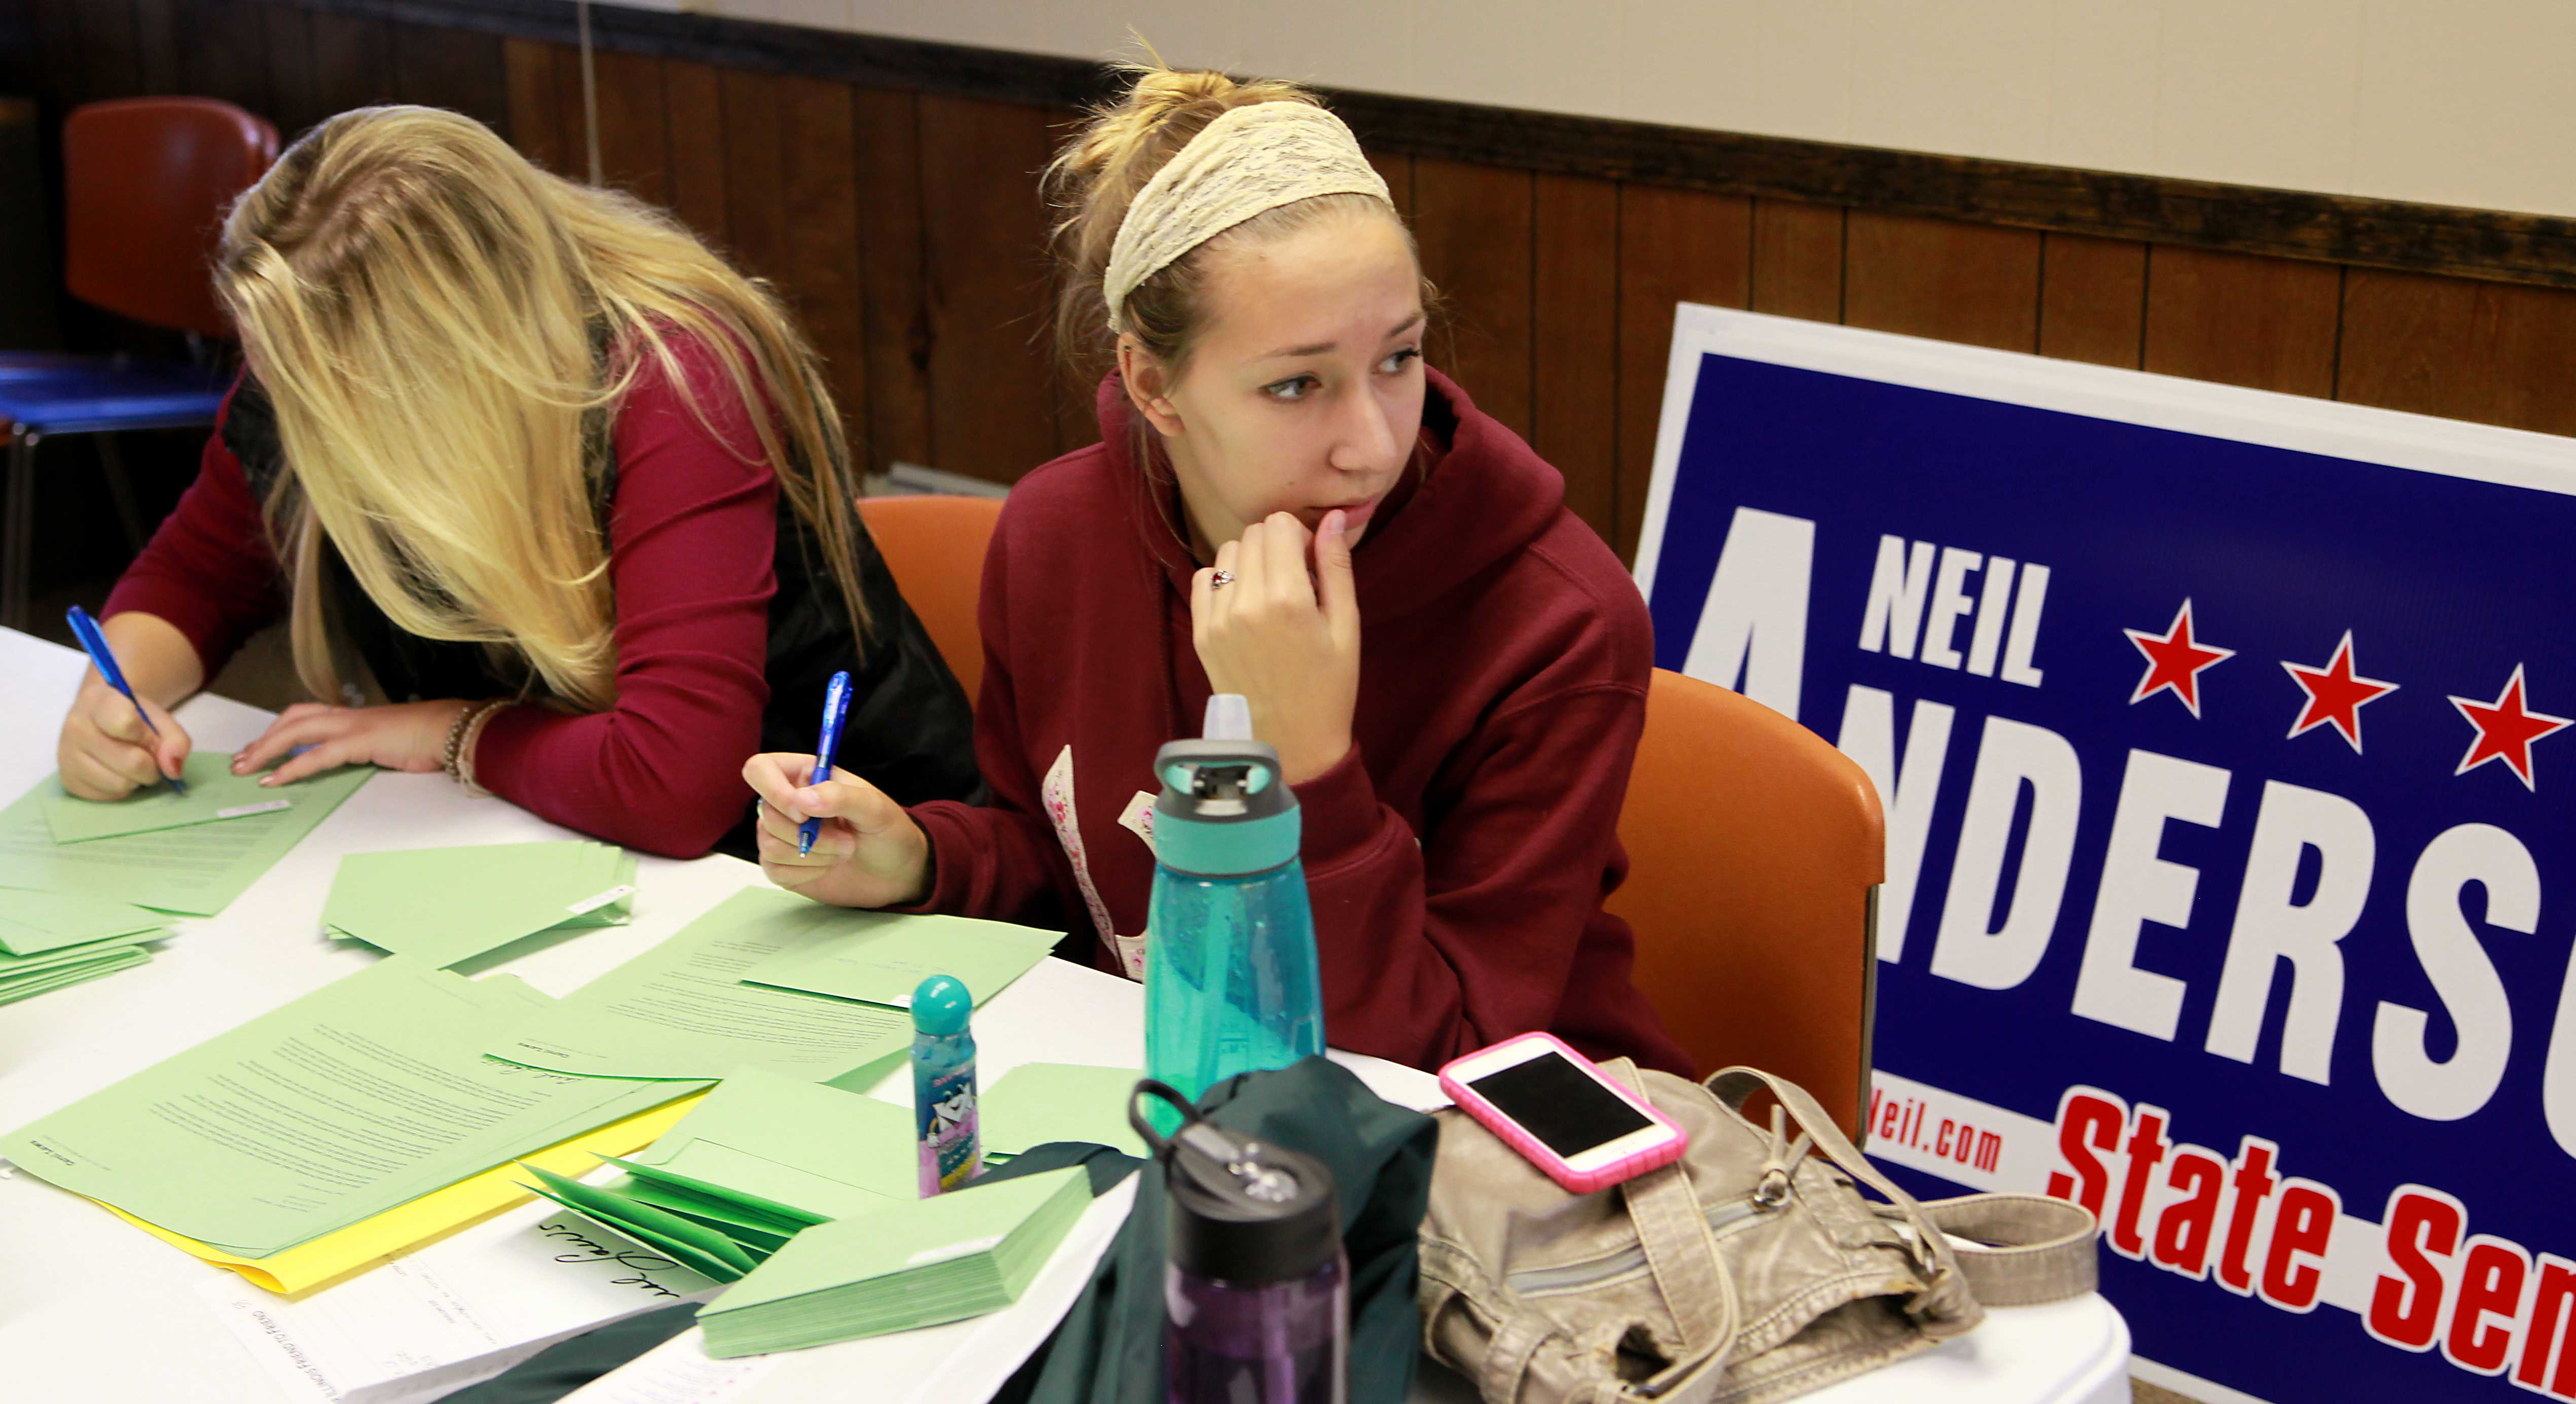 Ryan Silvola/Observer Staff First-year Becky Lindstrom and Junior Sophie Bennett work with Slone and other Augustana students on Neil Anderson's campaign for U.S. Senator. Anderson is running against incumbent Senator Mike Jacobs, D-Ill.